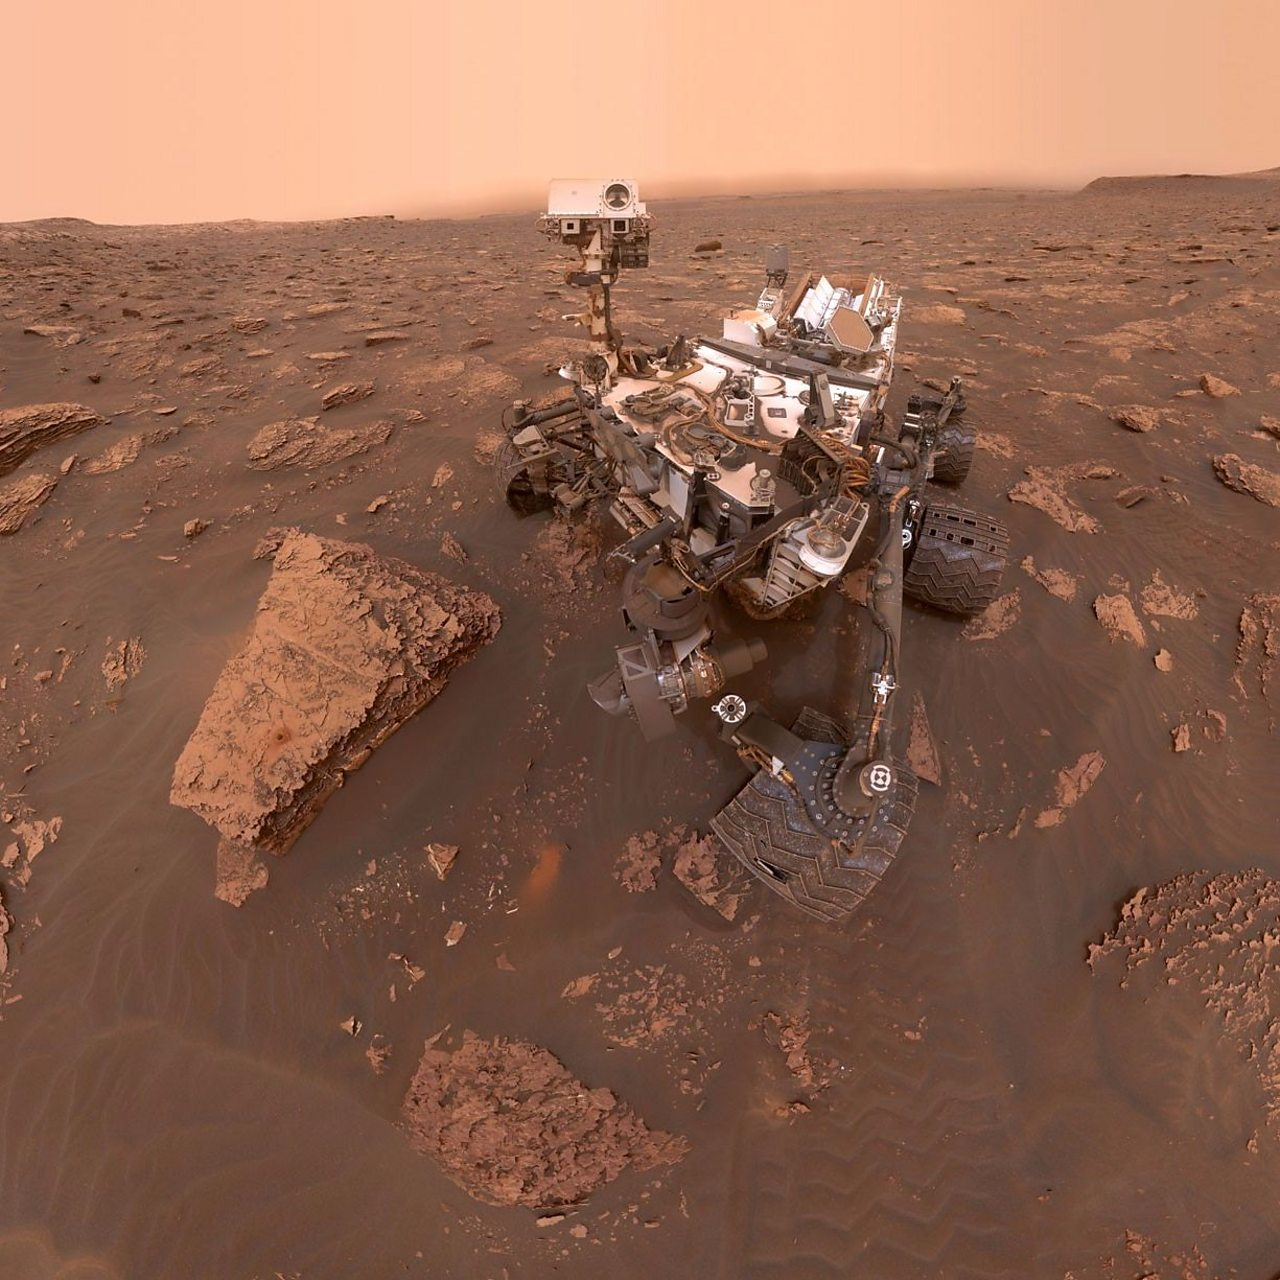 The Mars Rover takes its first selfie.